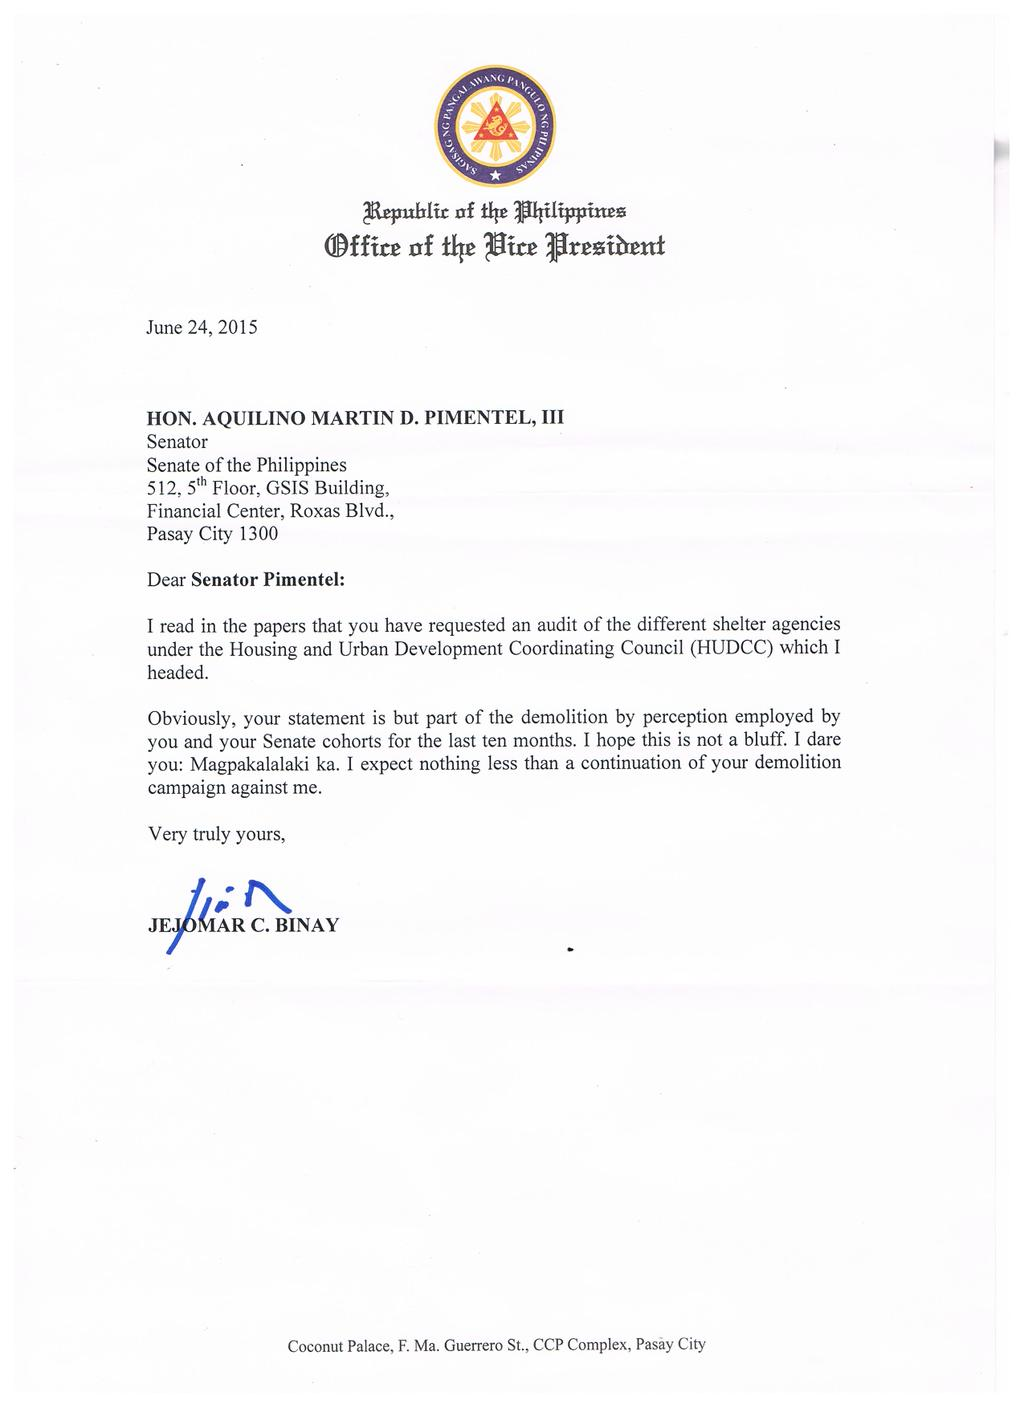 LOOK: VP Binay's letter to Sen. Koko Pimentel taunting